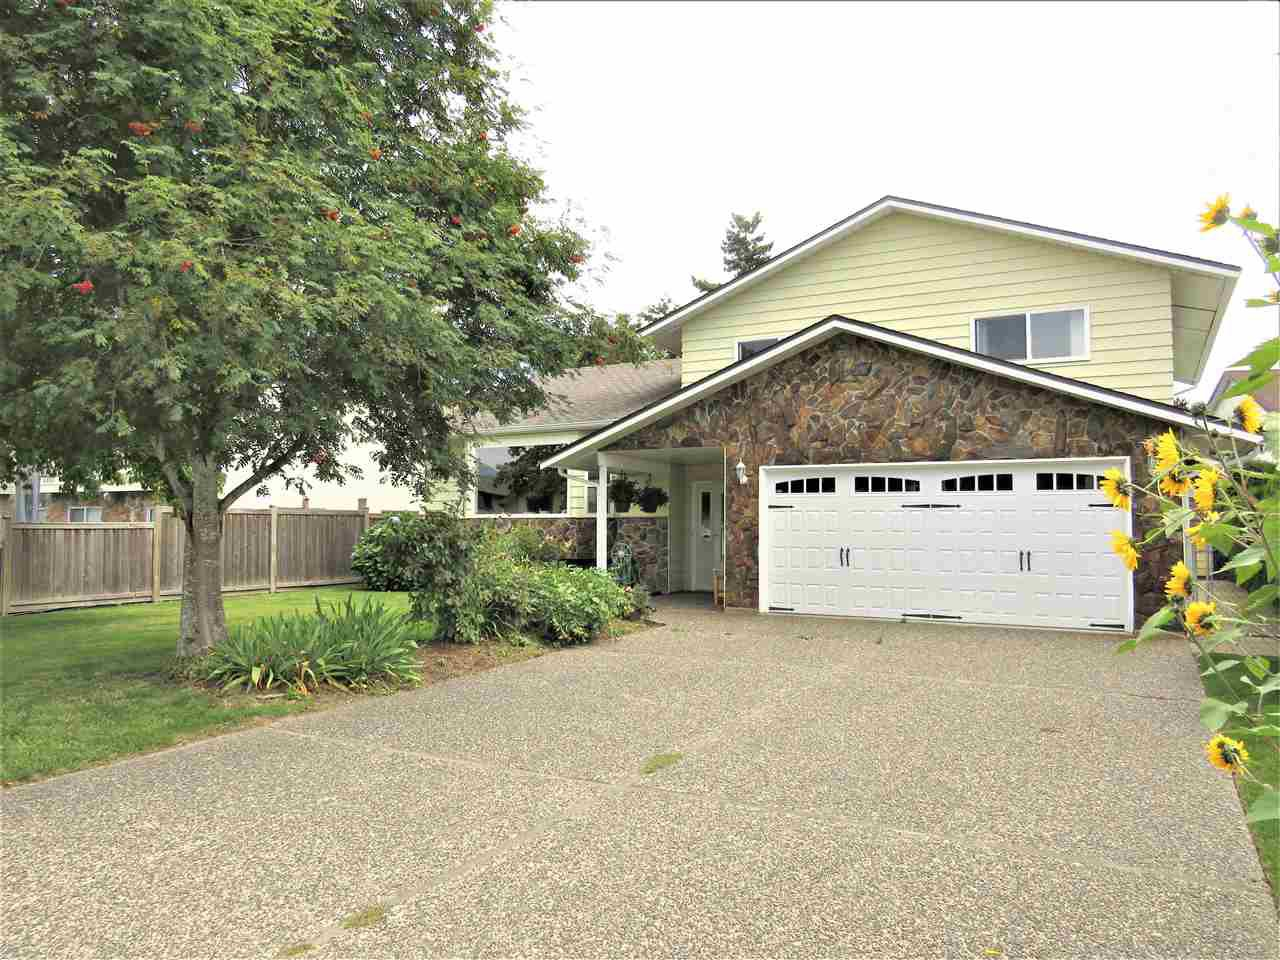 Main Photo: 6482 WILTSHIRE Street in Sardis: Sardis West Vedder Rd House for sale : MLS®# R2389613